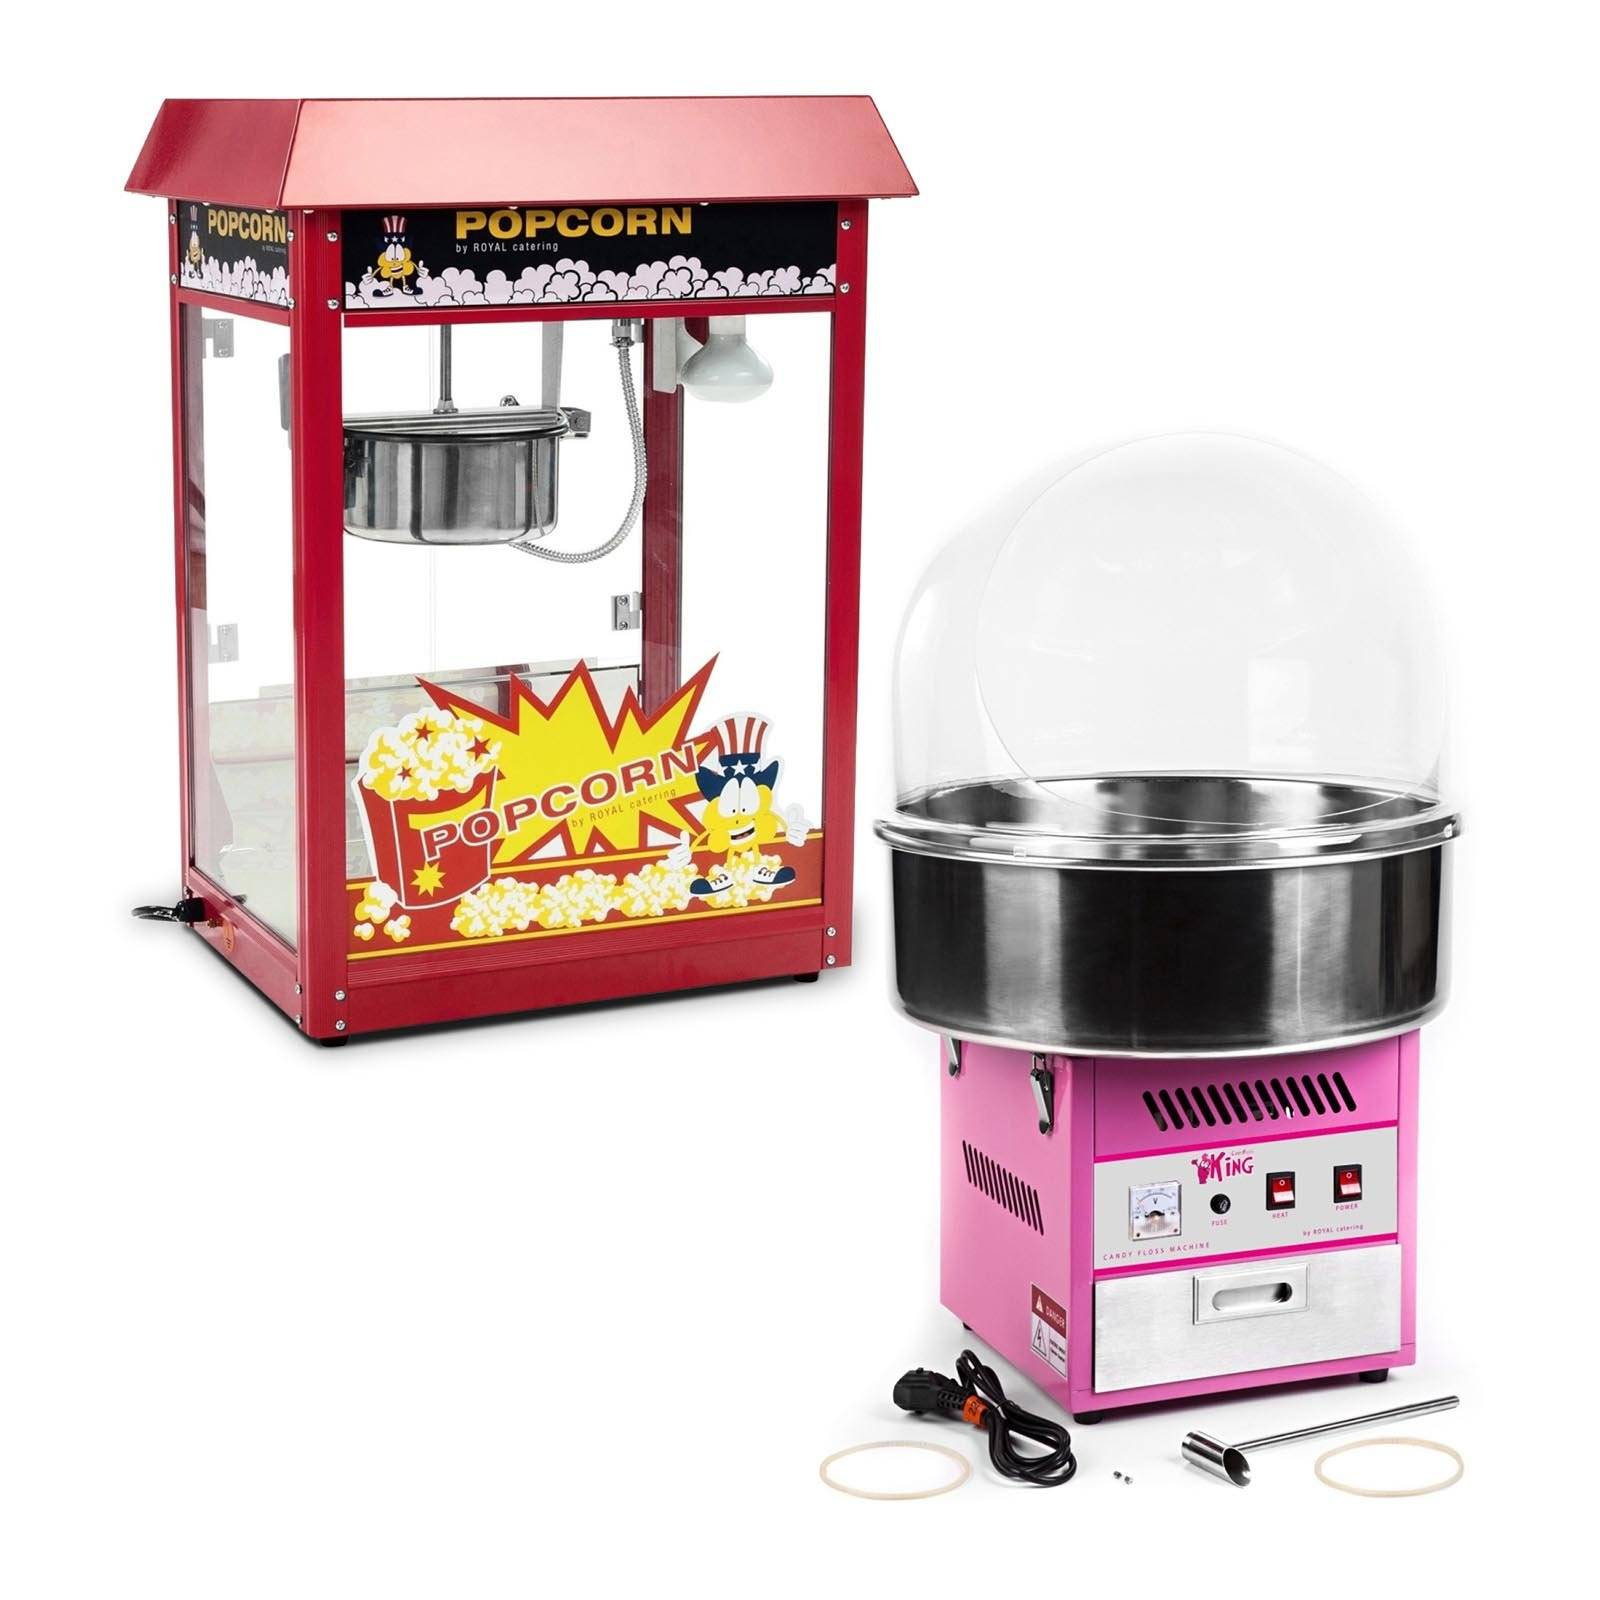 Royal Catering Kit machine à popcorn et machine à barbe à papa - 1 600 W / 1 200 W - Coupole de protection comprise RCPR-16E-SET